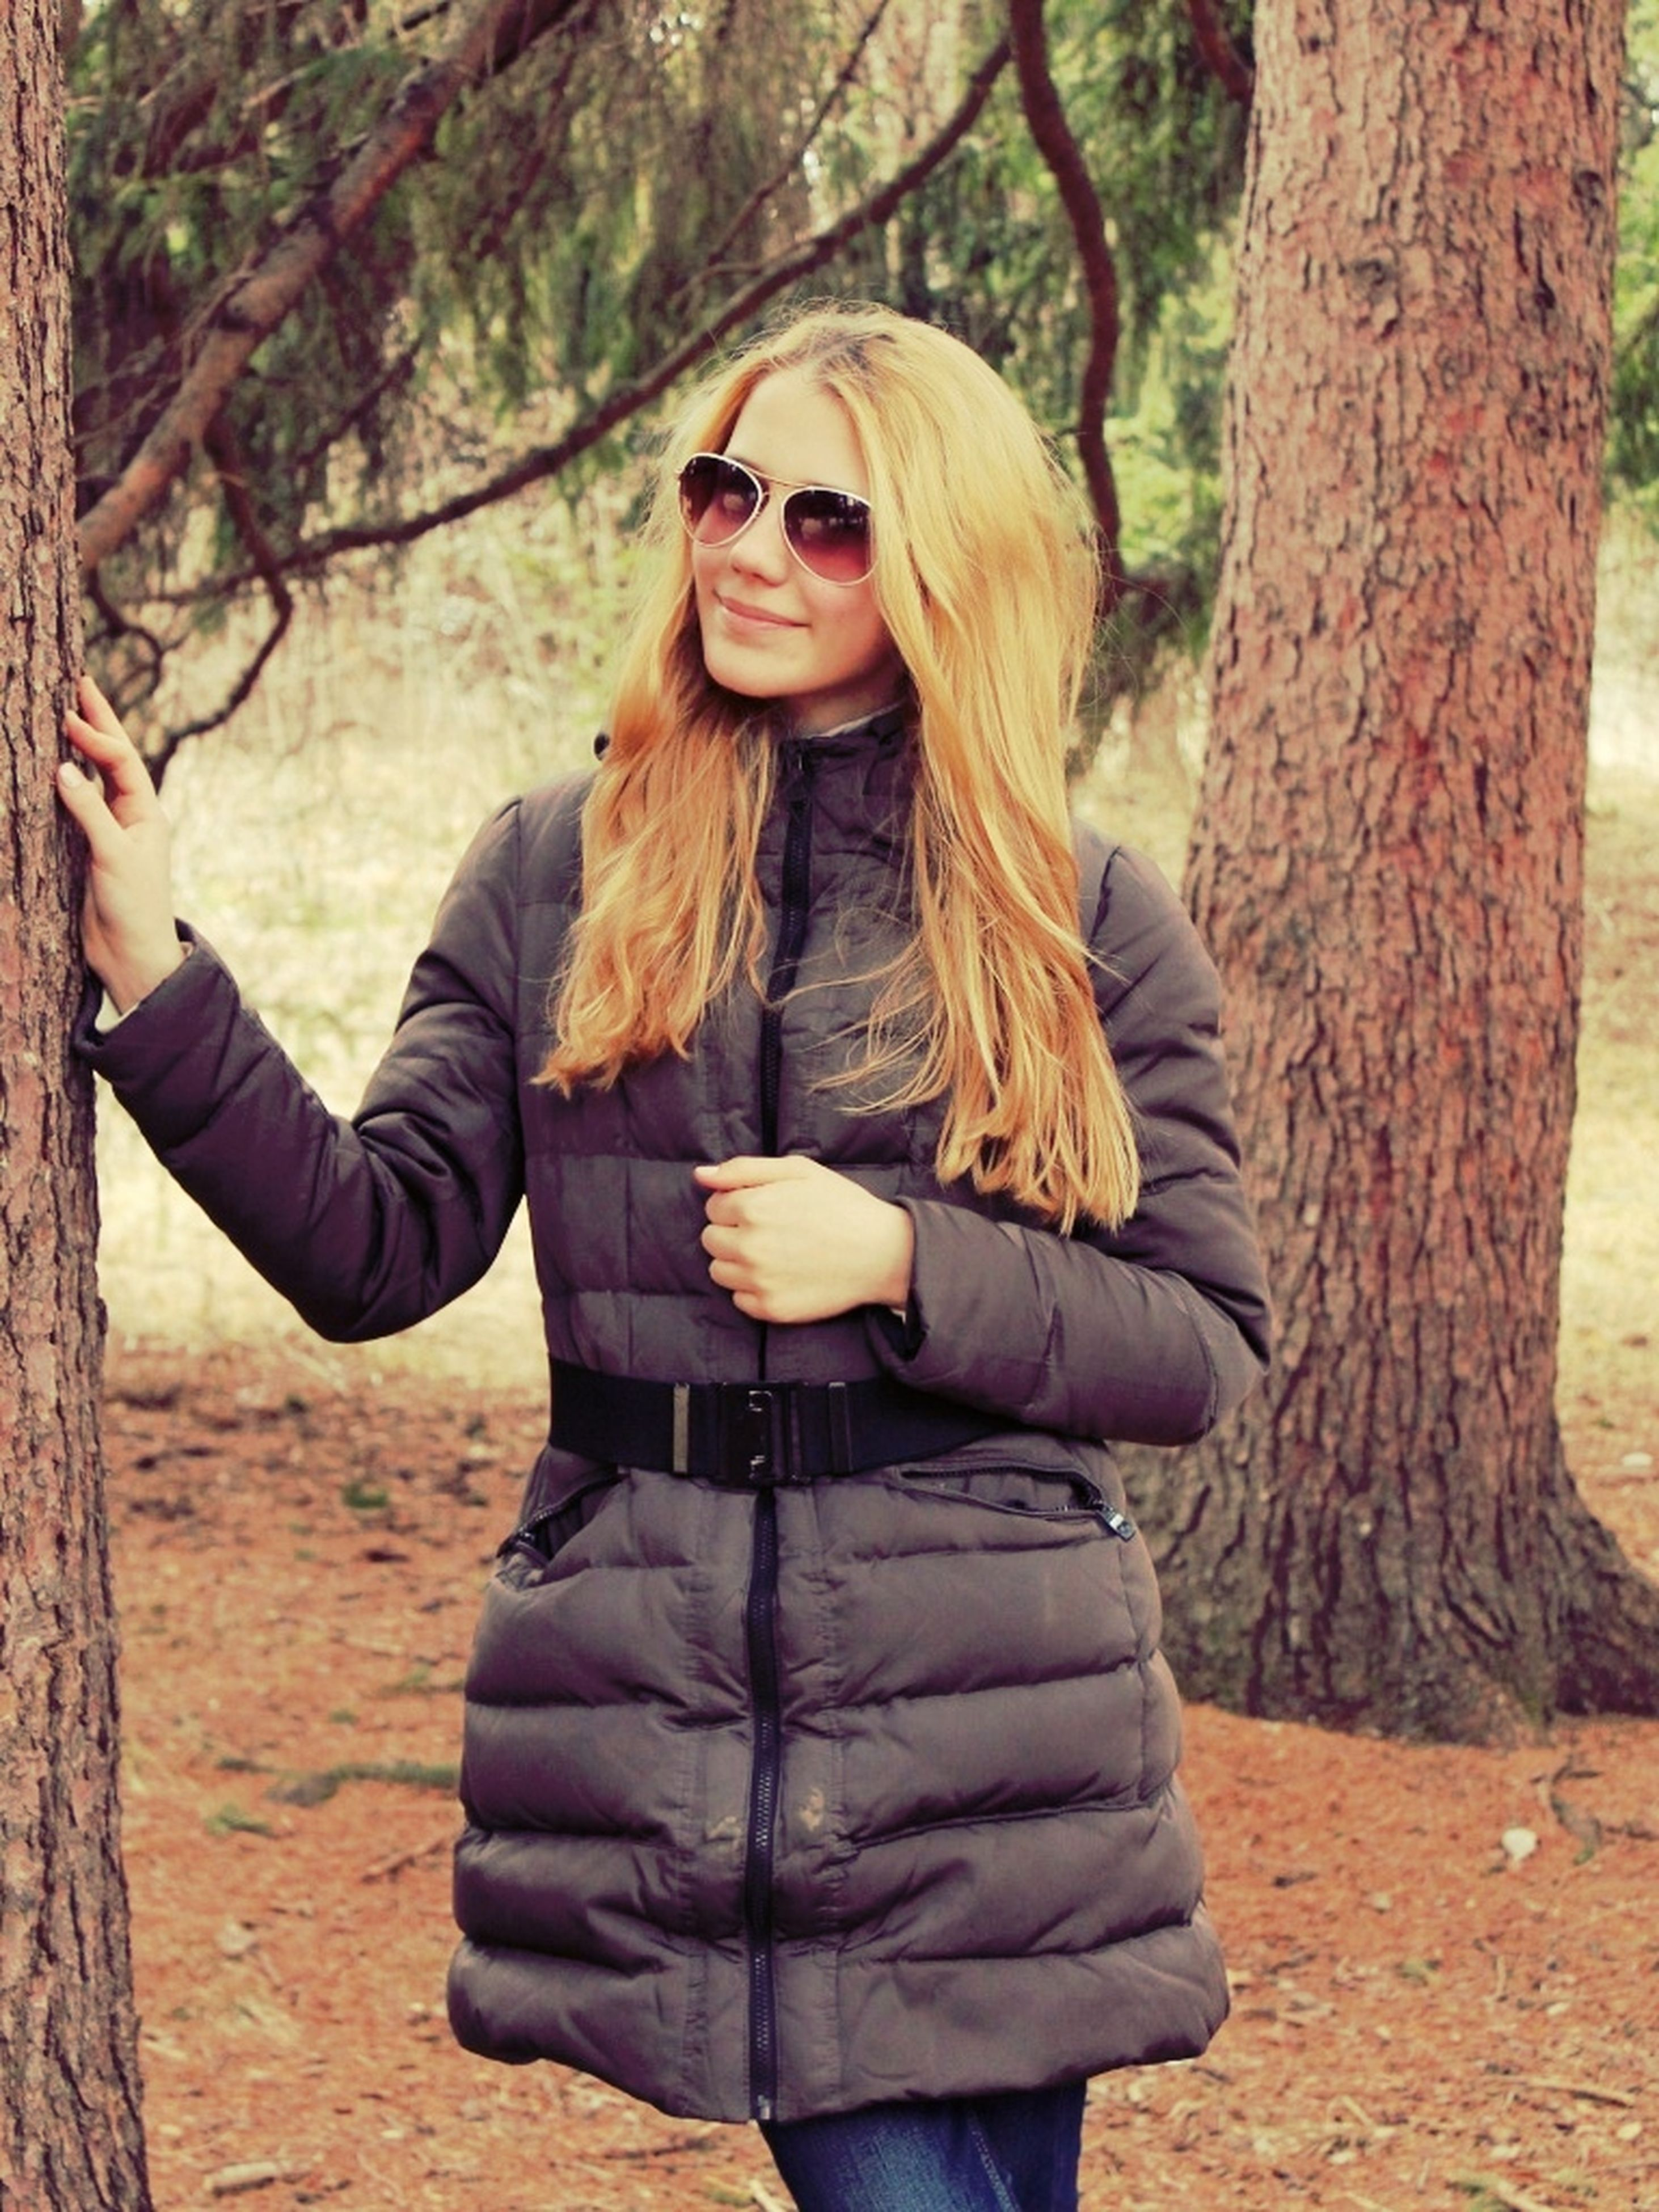 young adult, casual clothing, person, lifestyles, leisure activity, young women, standing, portrait, three quarter length, looking at camera, tree, front view, long hair, smiling, sunglasses, jacket, hands in pockets